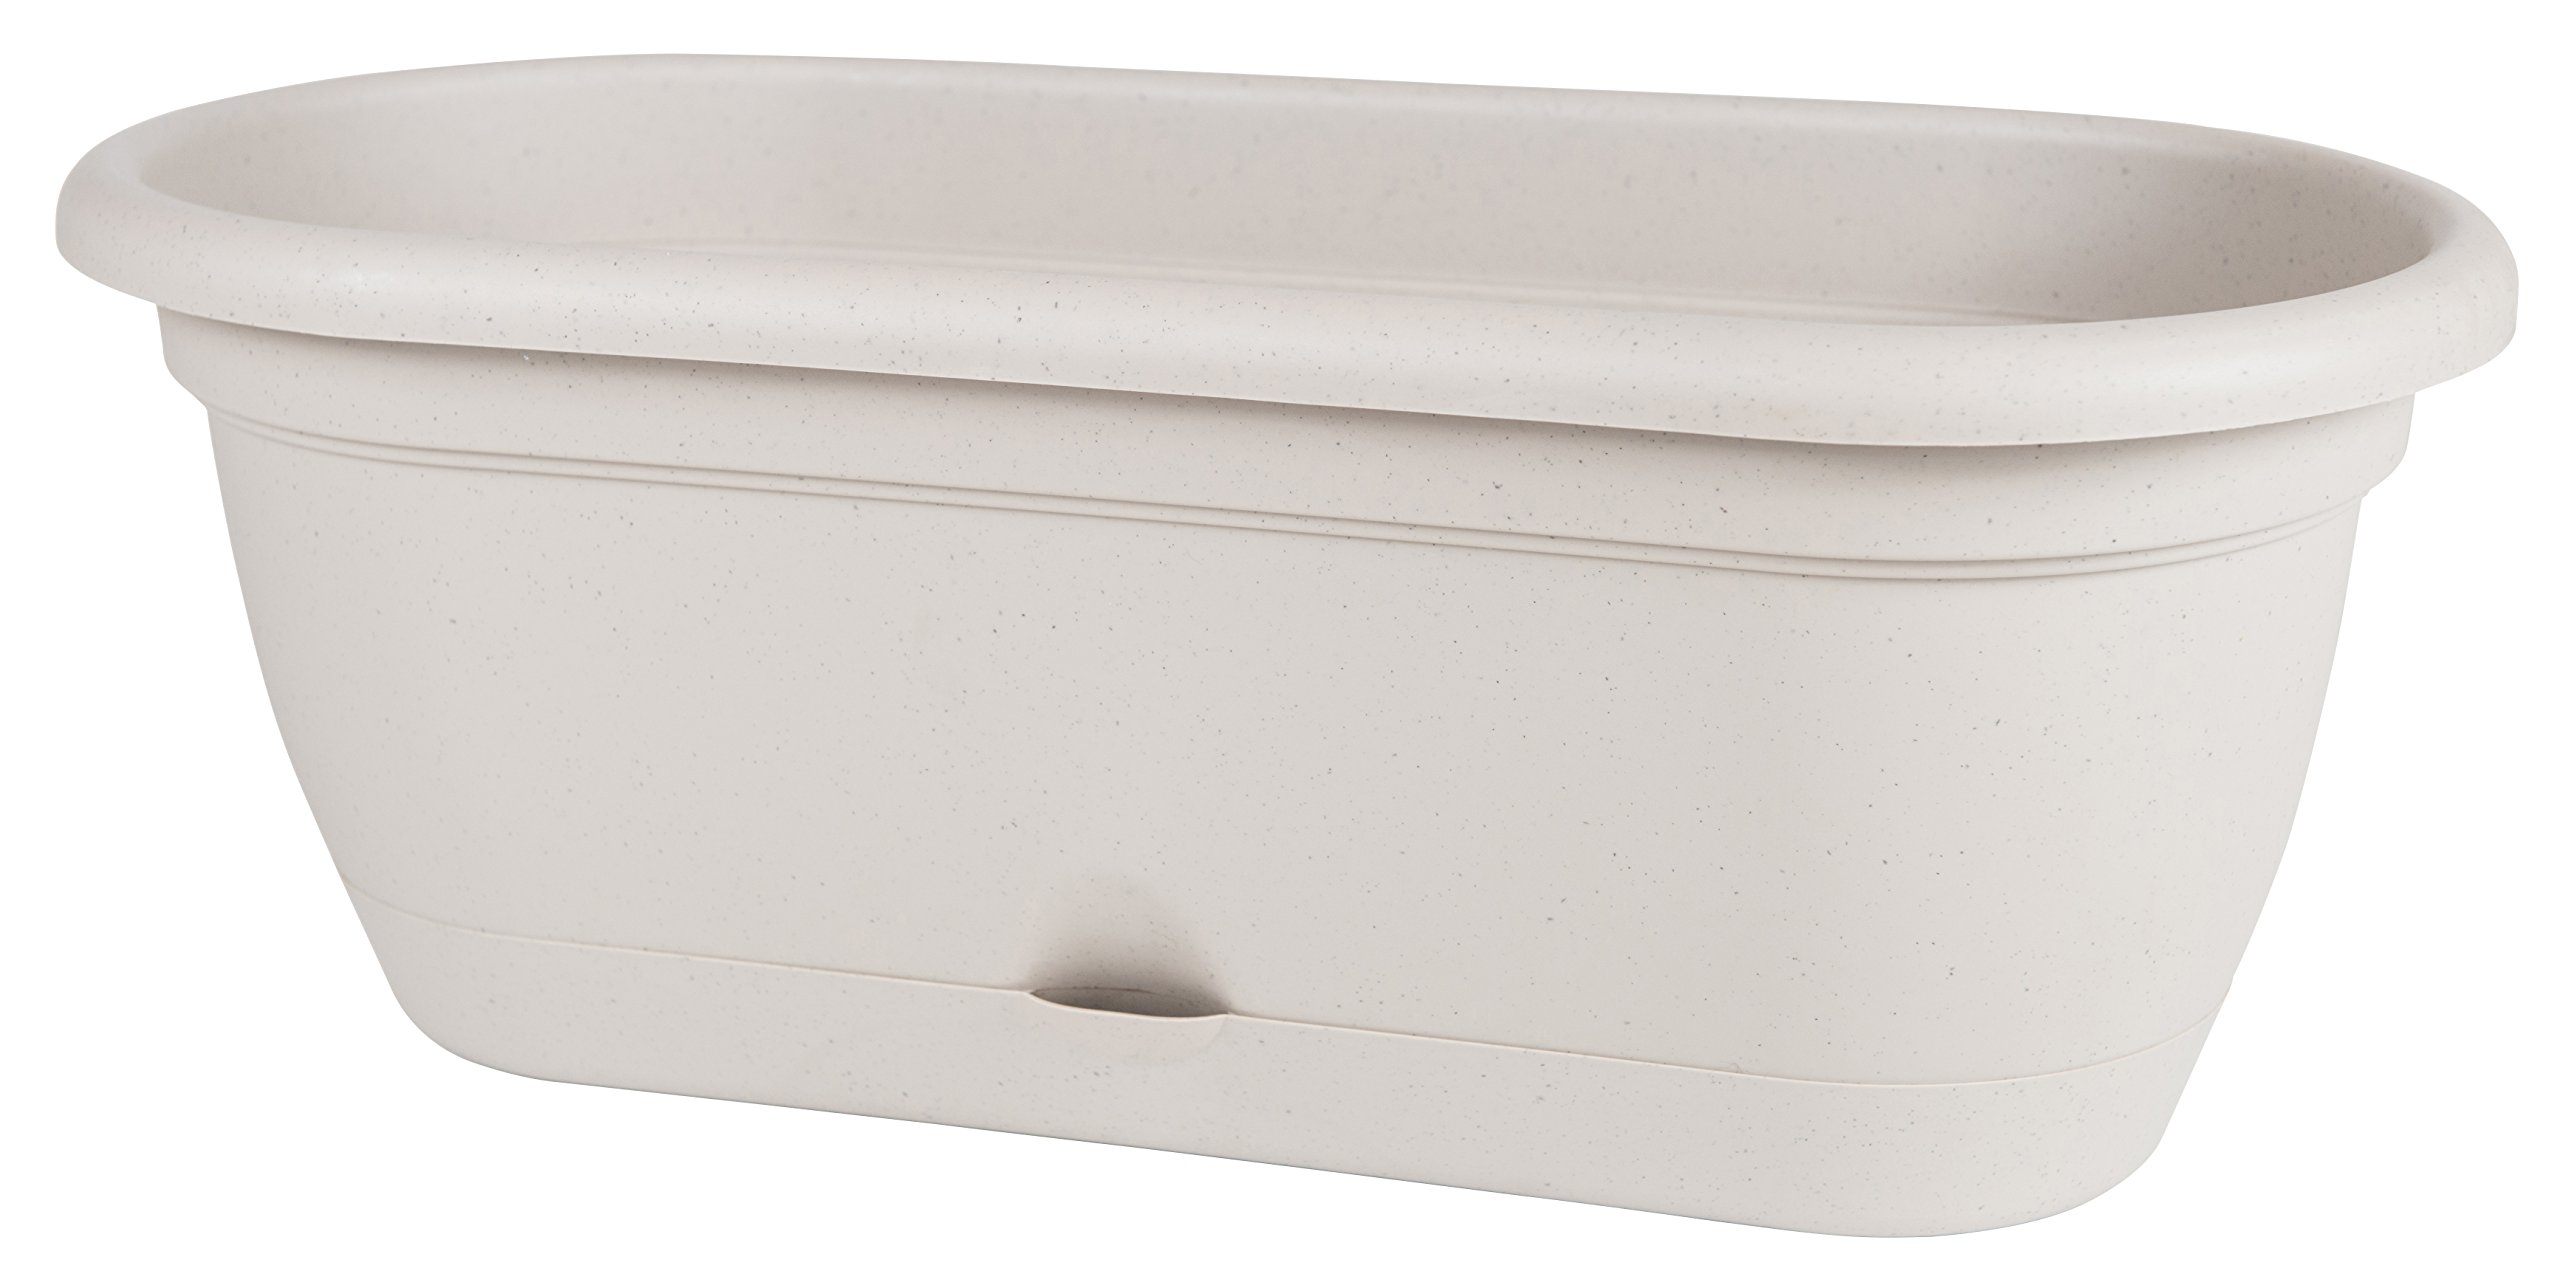 Bloem Lucca Self Watering Window Box, 18'', Taupe (LWB1835)